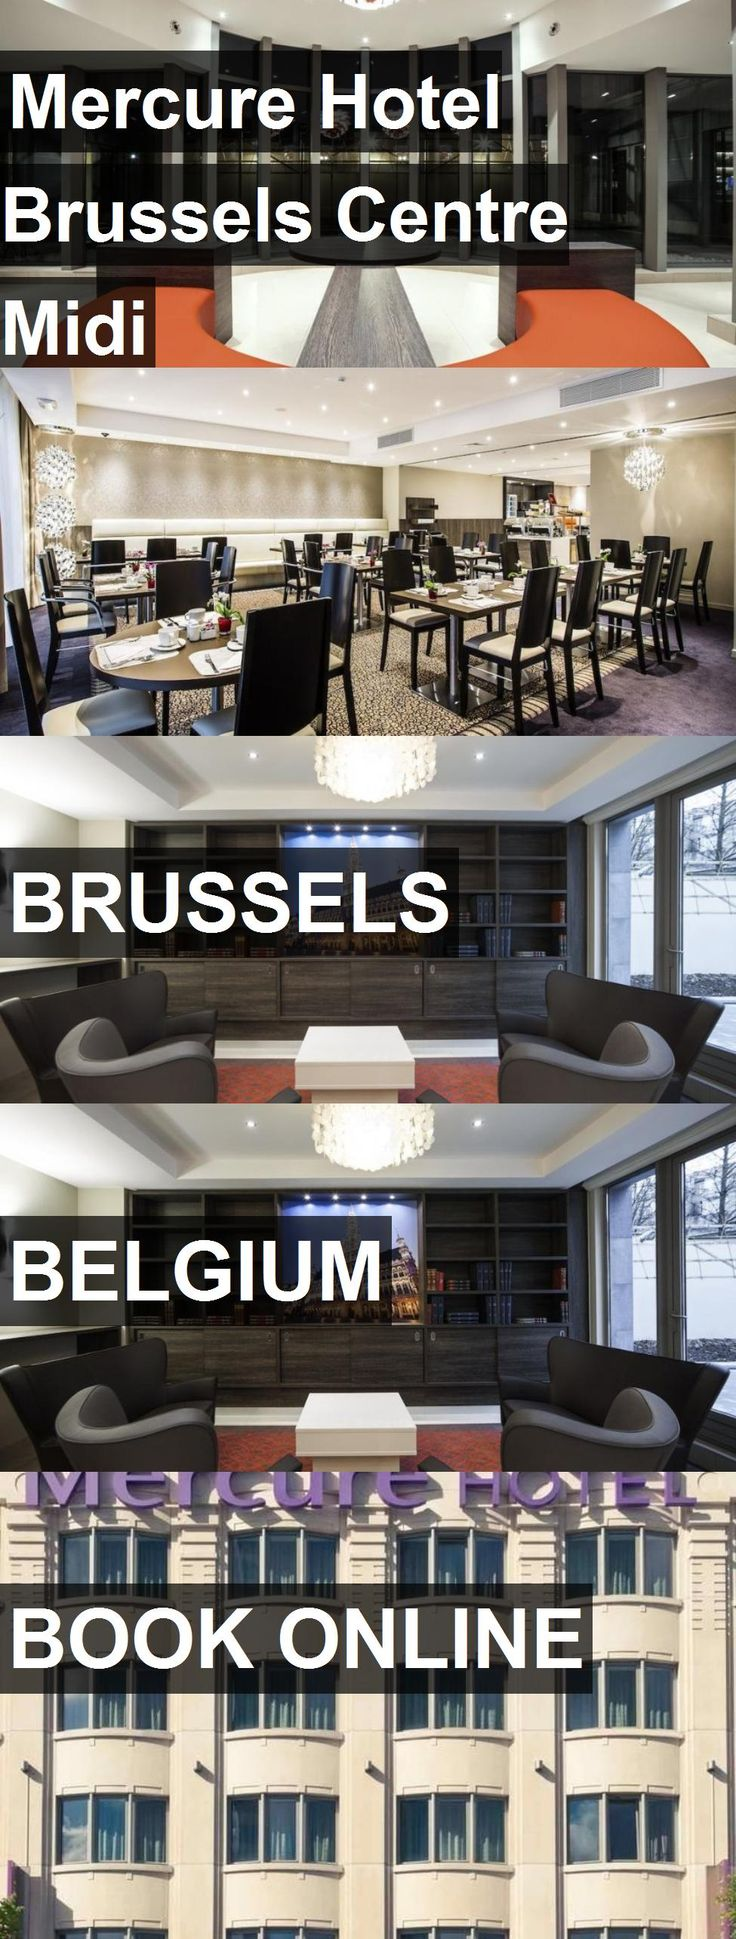 Hotel Mercure Hotel Brussels Centre Midi in Brussels, Belgium. For more information, photos, reviews and best prices please follow the link. #Belgium #Brussels #MercureHotelBrusselsCentreMidi #hotel #travel #vacation